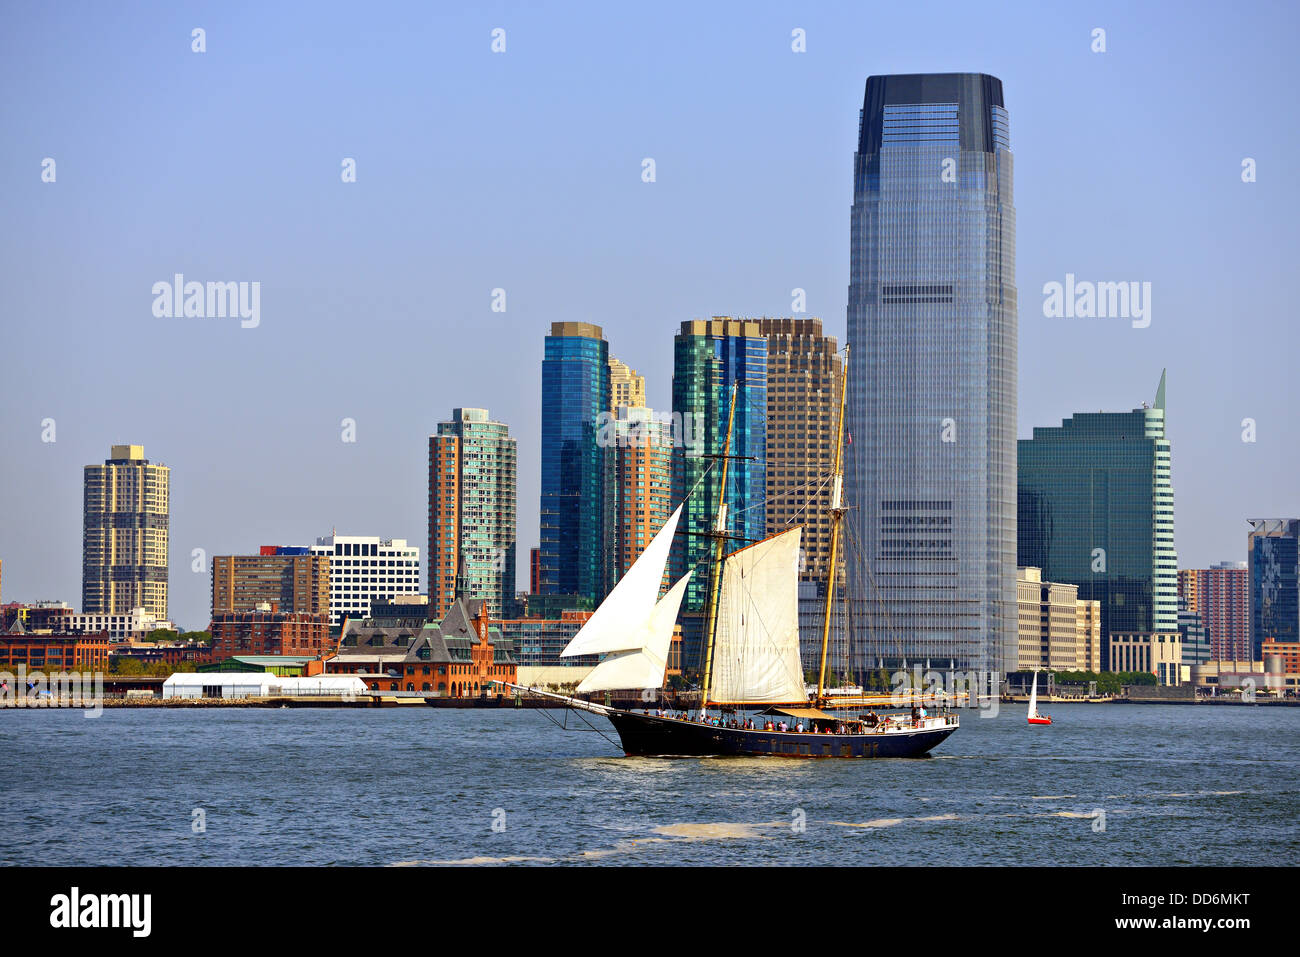 New jersey skyline at Exchange Place. - Stock Image